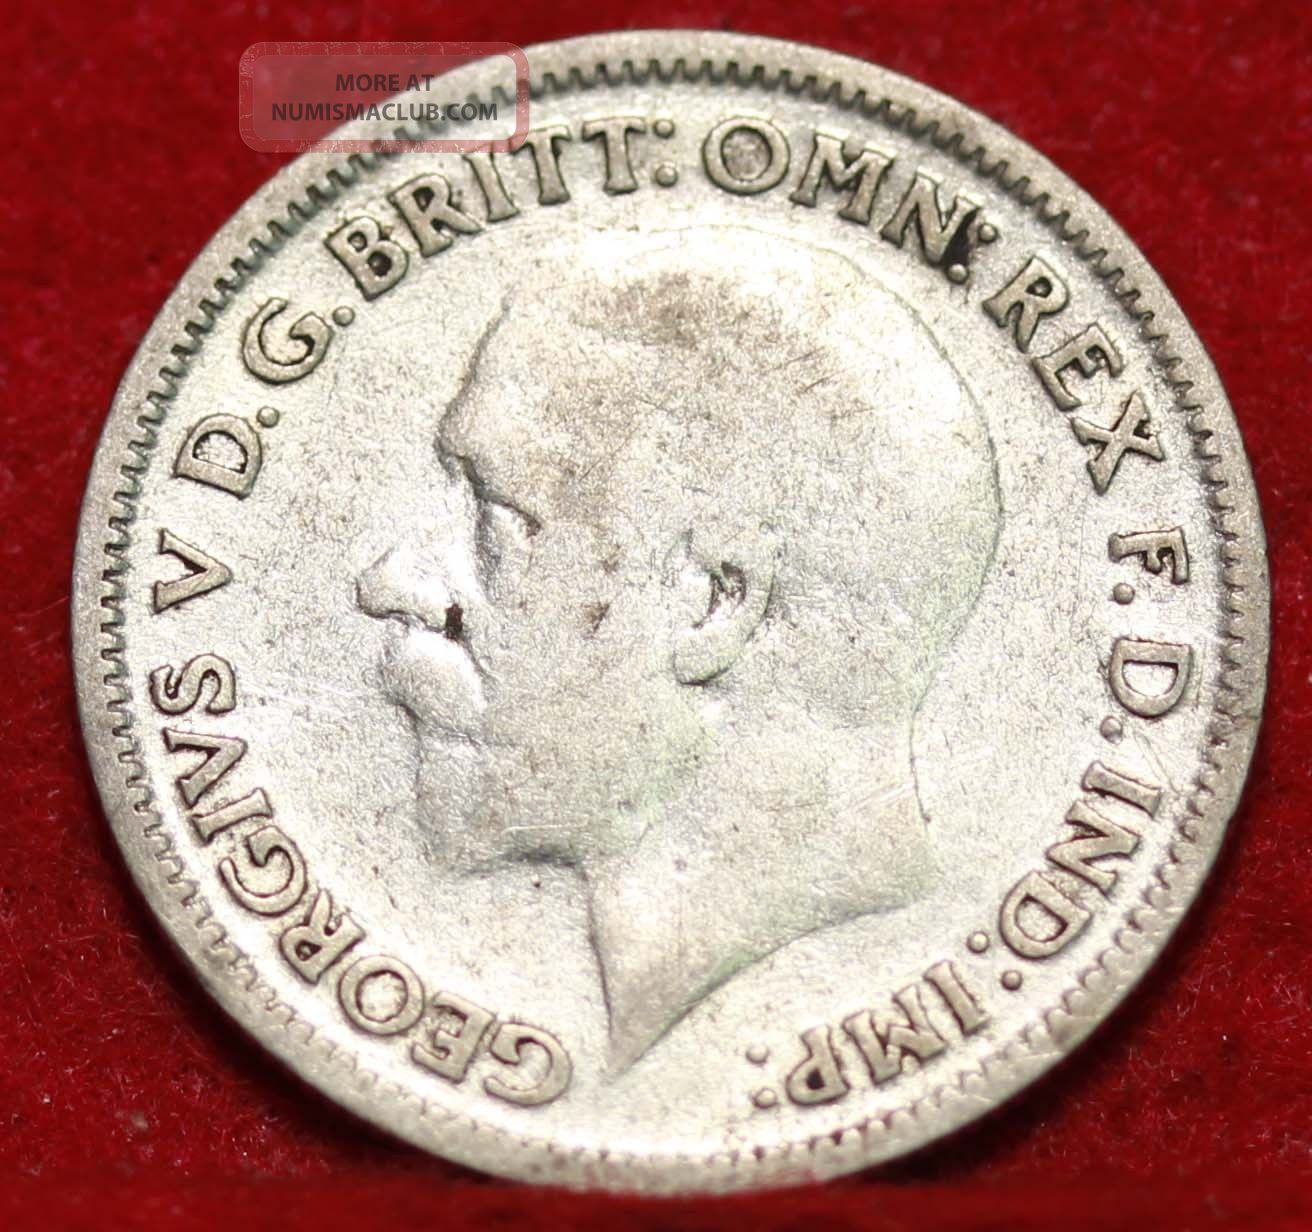 1931 Great Britain 6 Pence Silver Foreign Coin S/h UK (Great Britain) photo